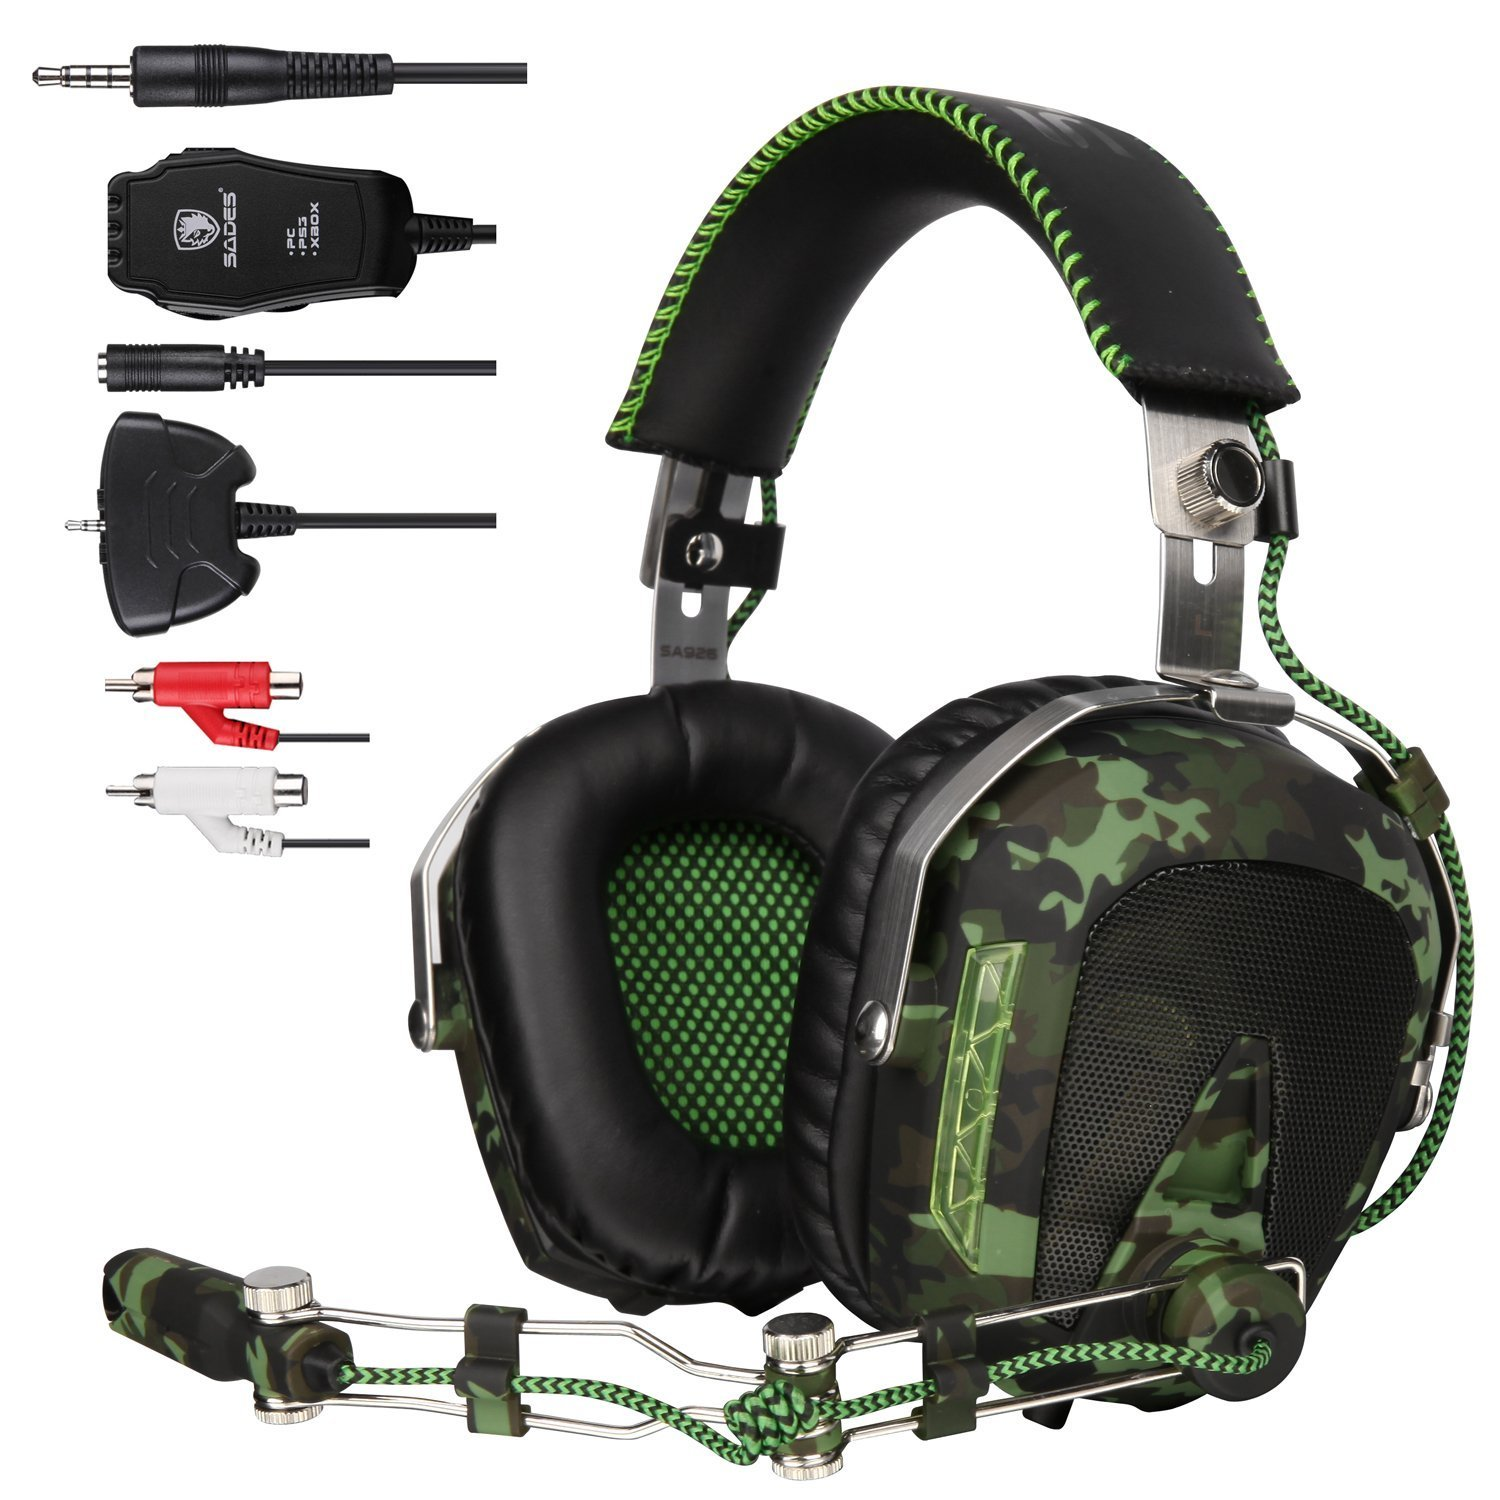 71D8mVWXMrL._SL1500_ amazon com sades sa926 gaming headset stereo wired over ear Headphone with Mic Wiring Diagram at creativeand.co